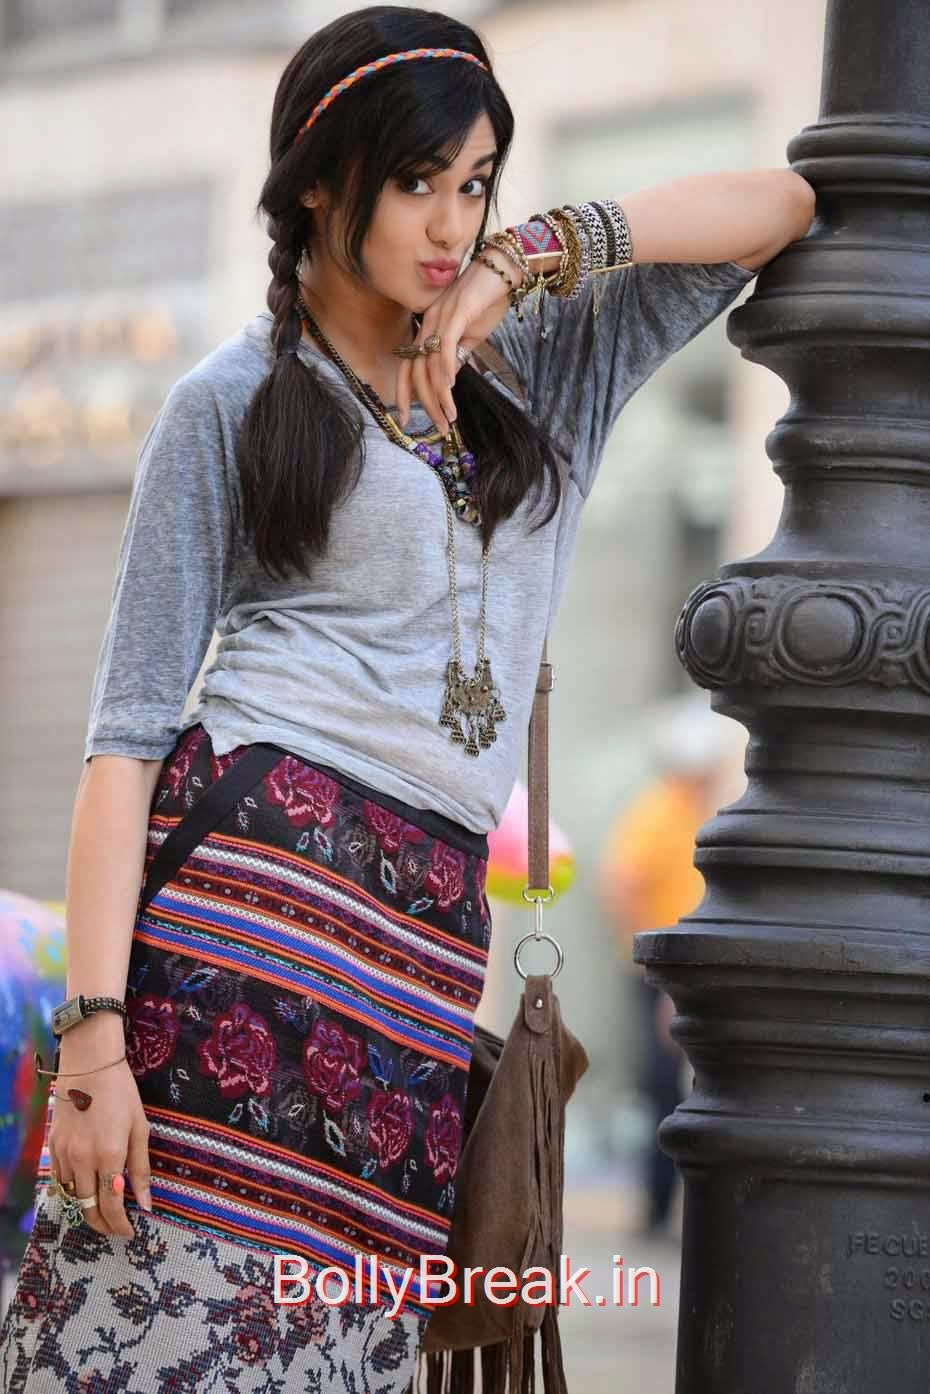 Adah Sharma Pictures, Adah Sharma Hot Pics In Grey and White Top